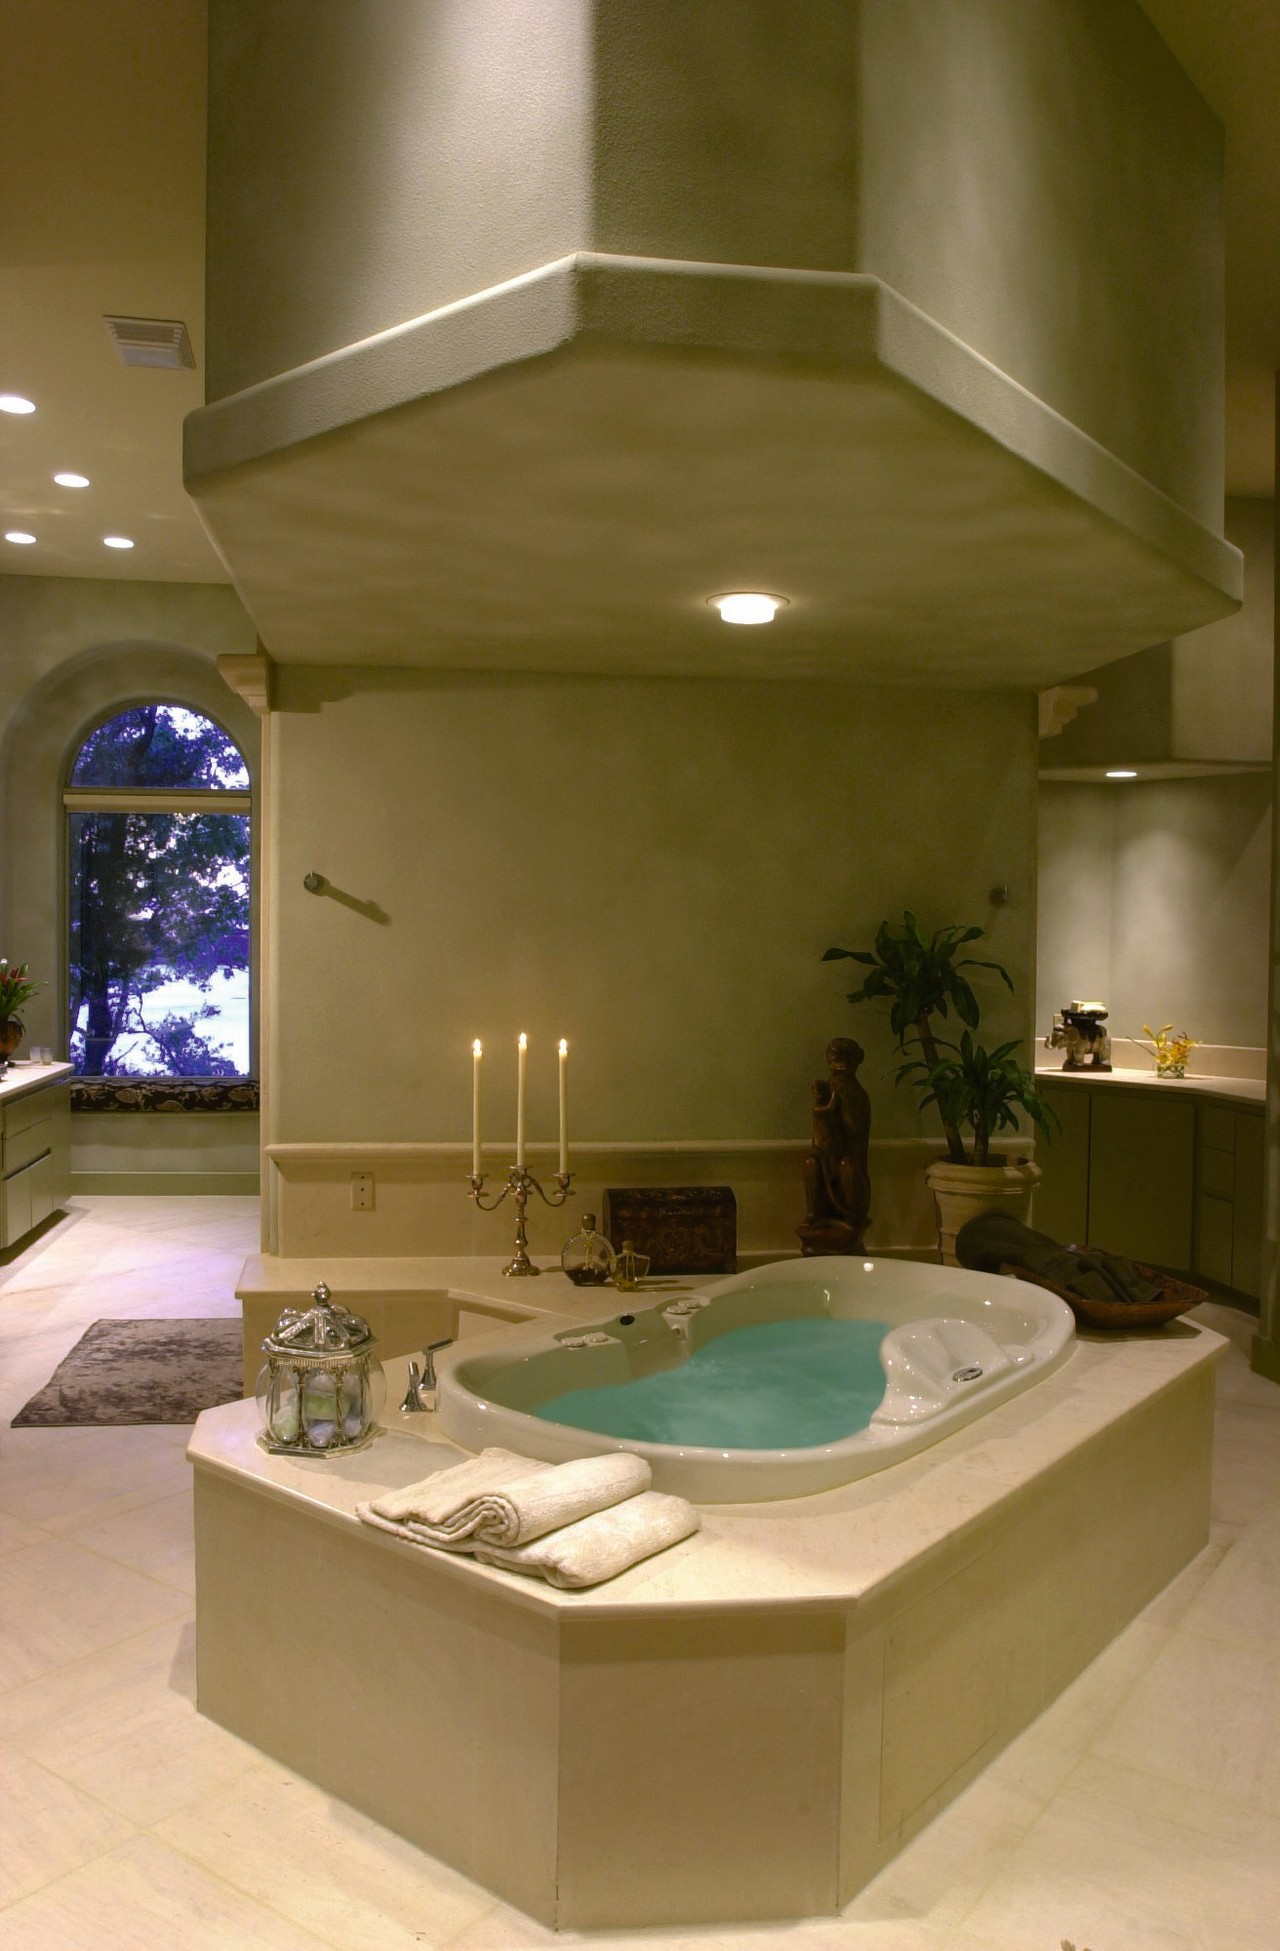 Incredible design elements in this bathroom bathroom, ceiling, countertop, estate, home, interior design, lighting, room, brown